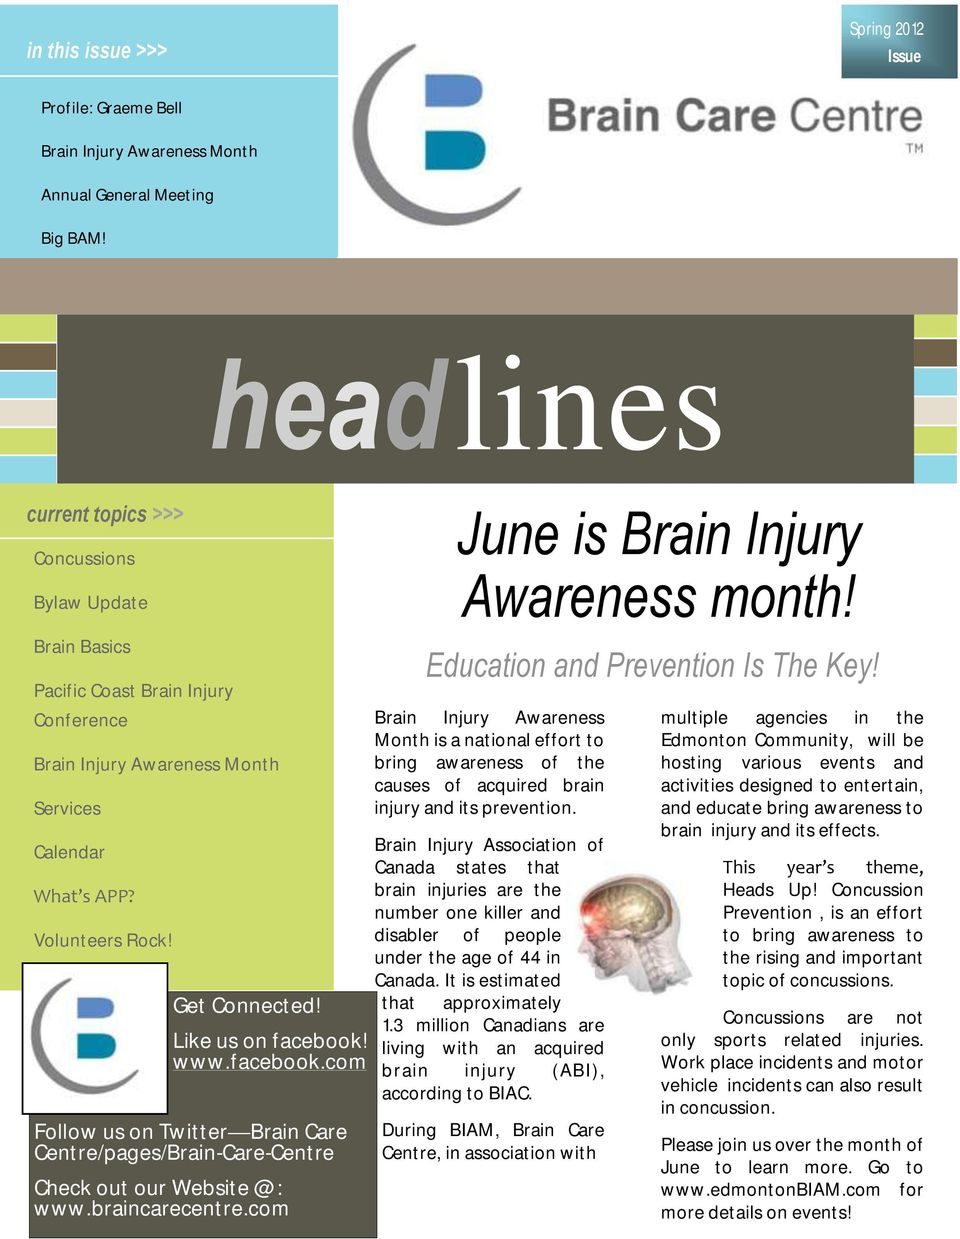 Like us on facebook! www.facebook.com Follow us on Twitter Brain Care Centre/pages/Brain-Care-Centre Check out our Website @: www.braincarecentre.com June is Brain Injury Awareness month!